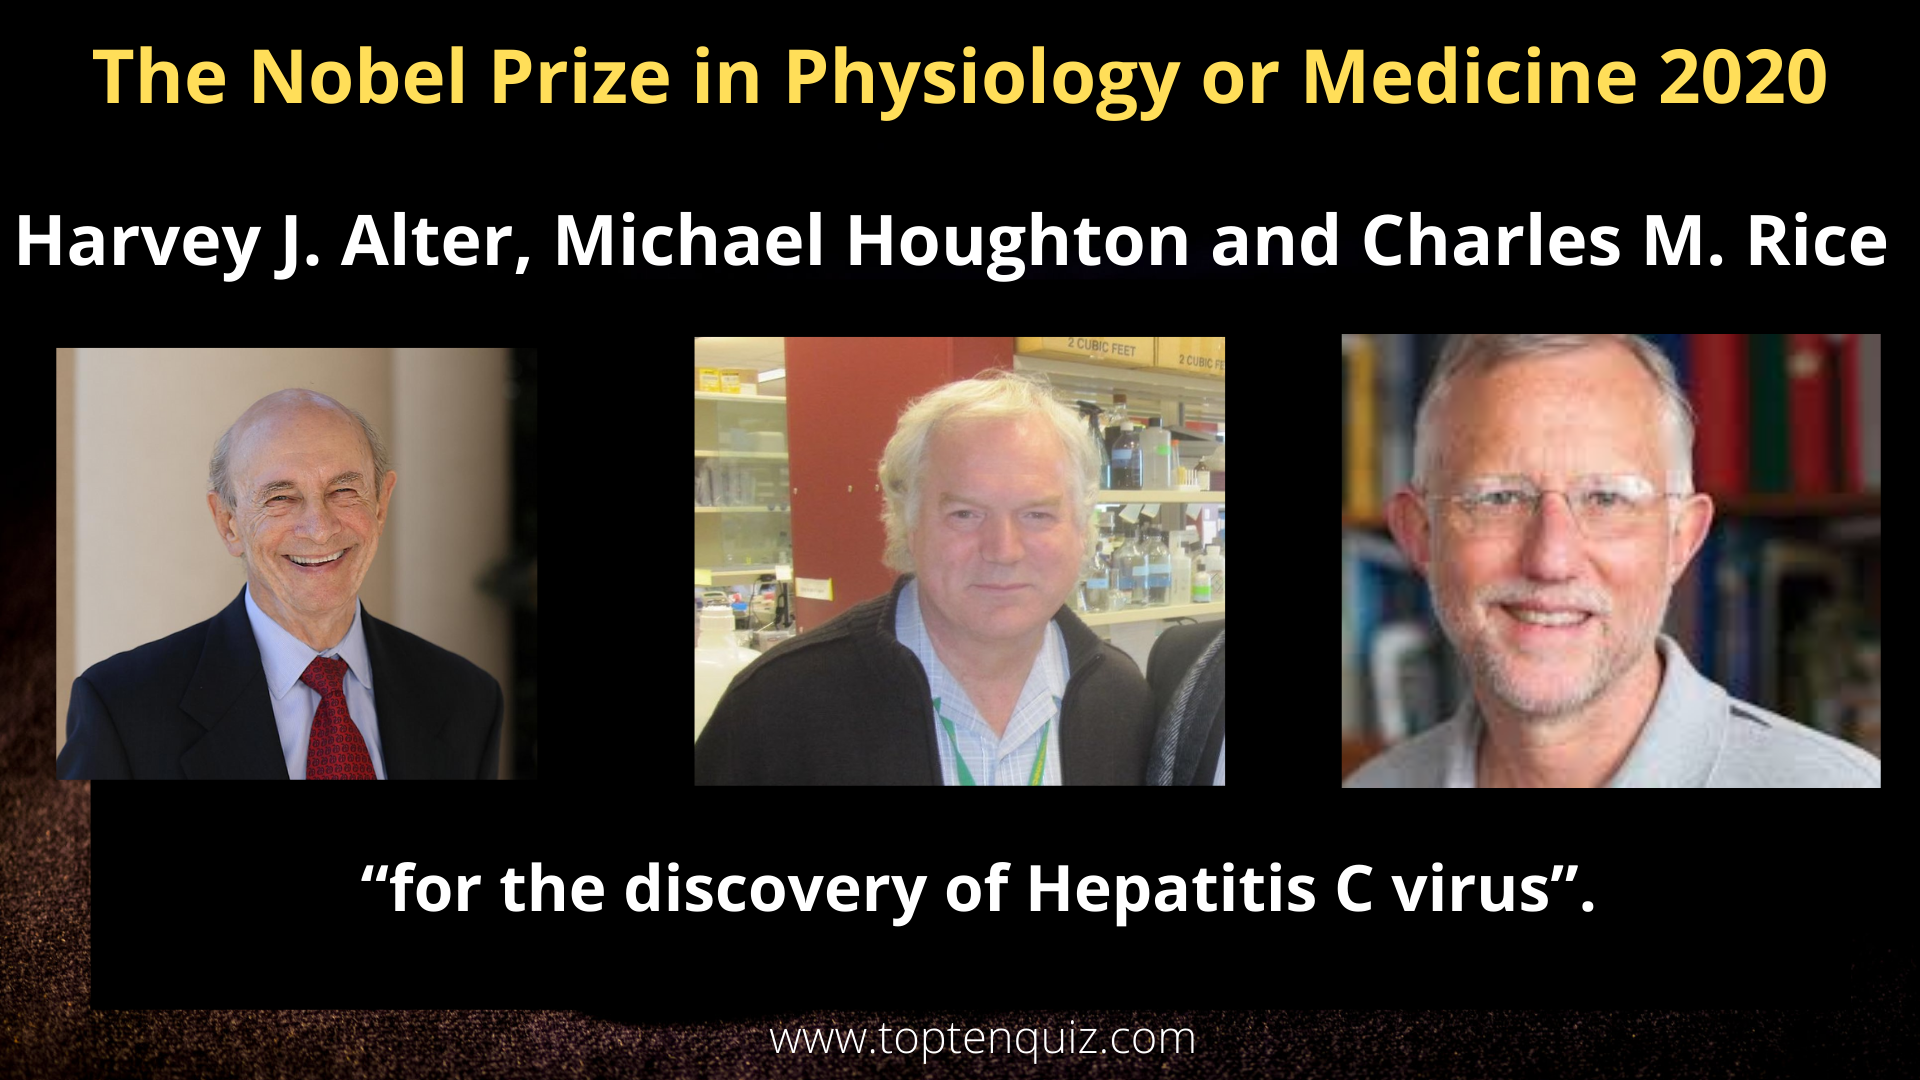 Nobel Prize Physiology or Medicine 2020 - Harvey J. Alter, Michael Houghton and Charles M. Rice